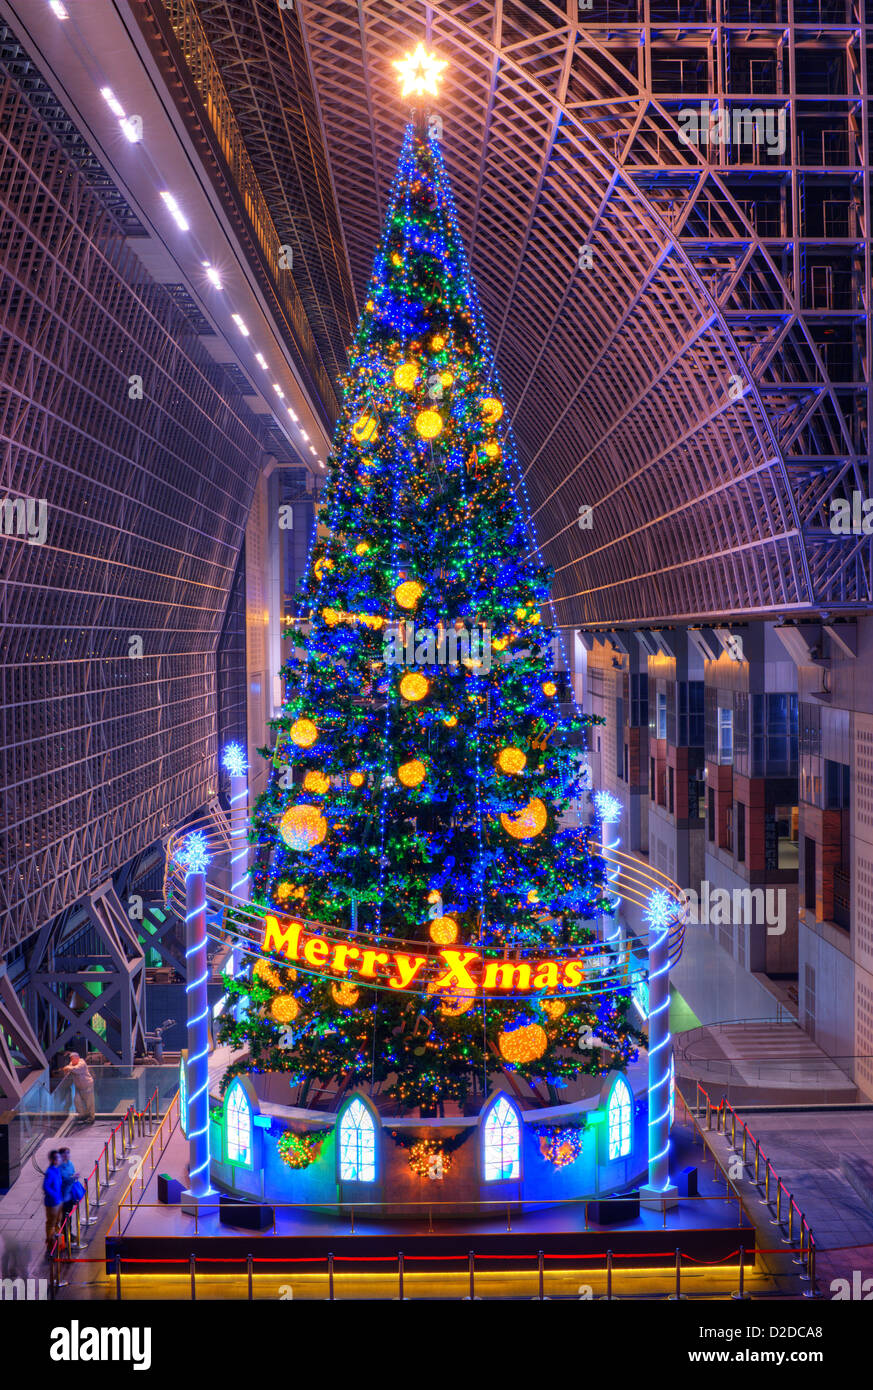 christmas tree at kyoto station november 21 2012 in kyoto japan stock - Japanese Christmas Tree Decorations